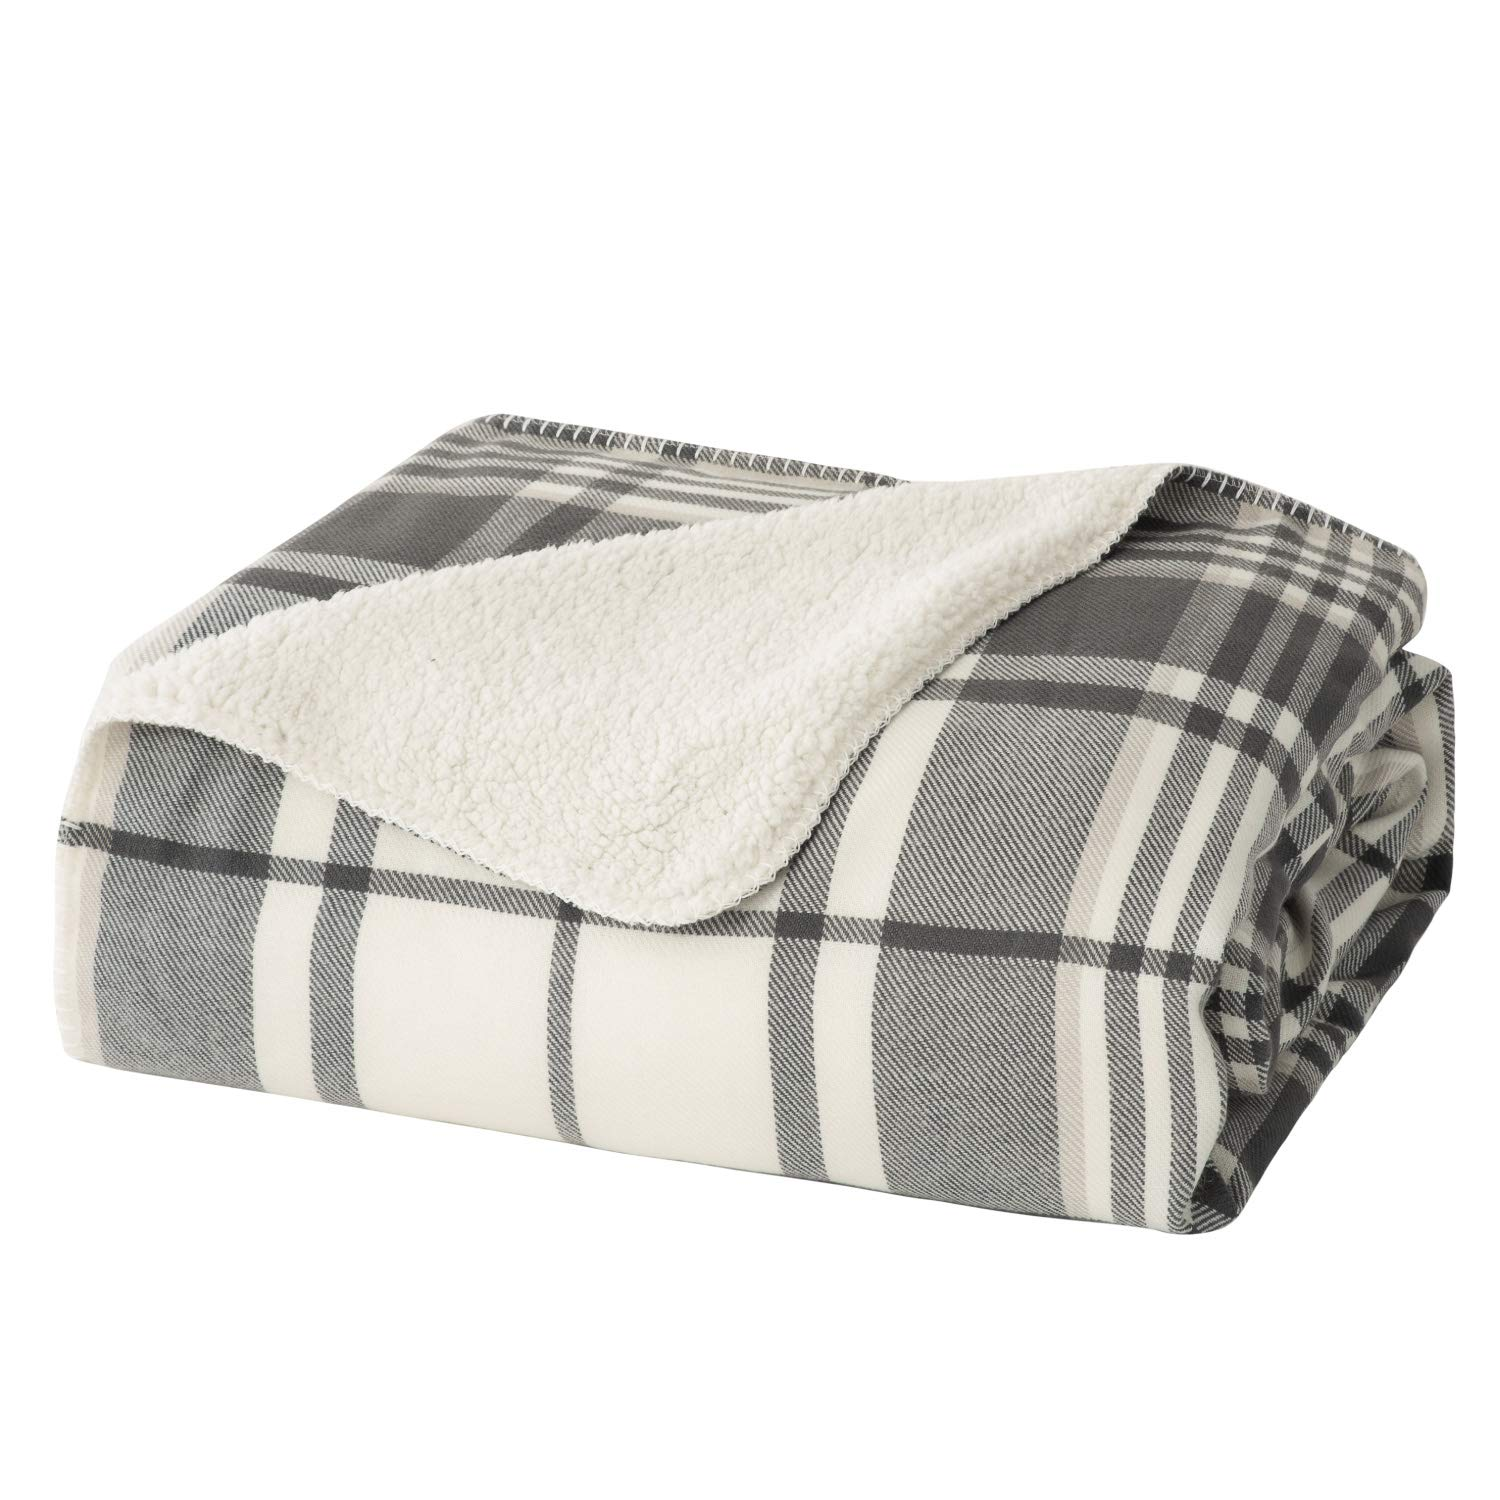 Incredible Bedsure Lightweight Plaid Sherpa Throw Blanket For Summer Fleece Blanket For Couch Soft Warm Black White 50 X 60 Inches Dailytribune Chair Design For Home Dailytribuneorg